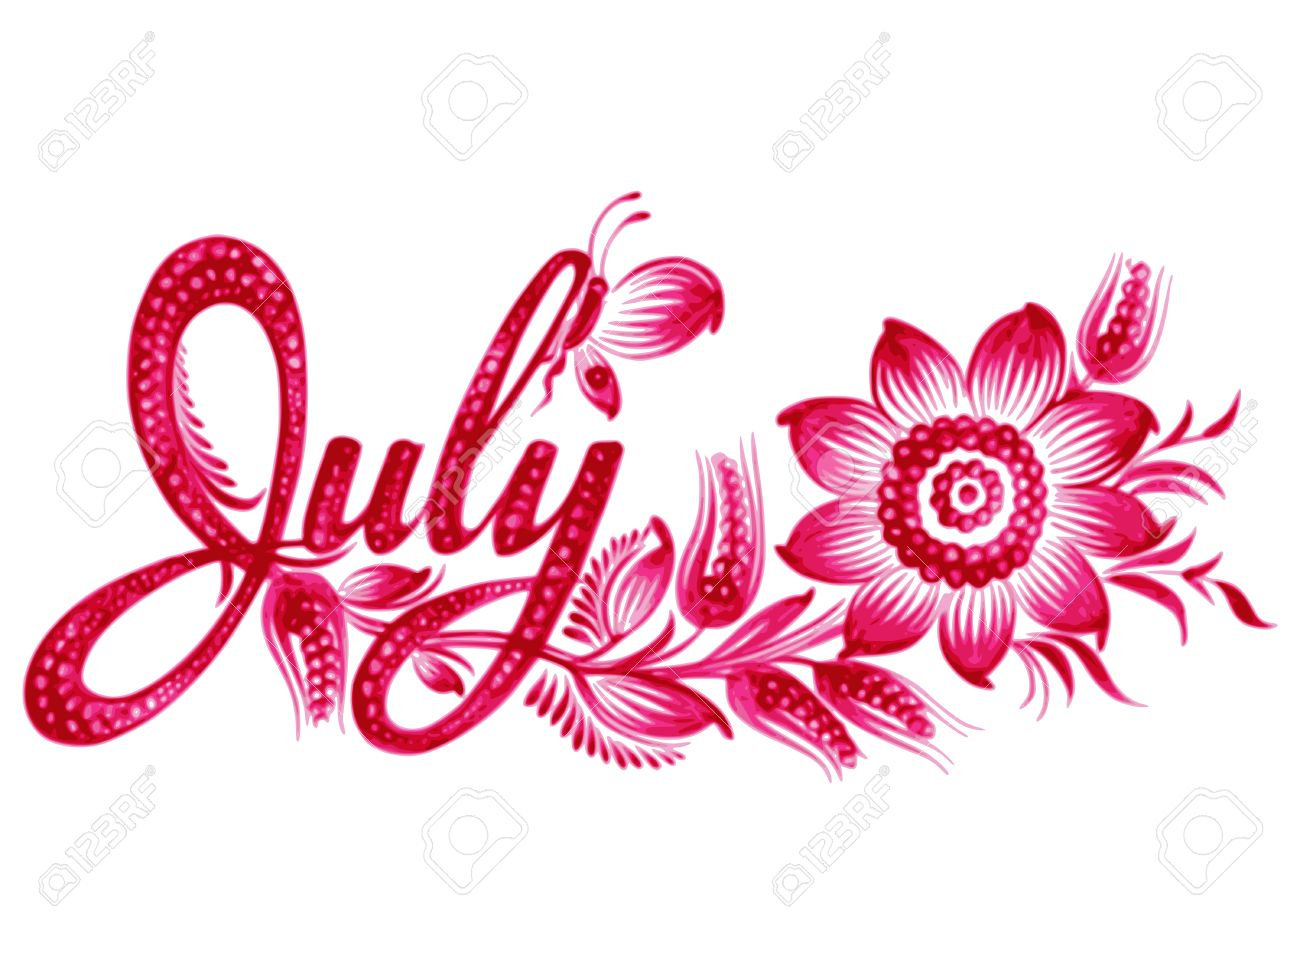 july name of the month hand drawn illustration in ukrainian